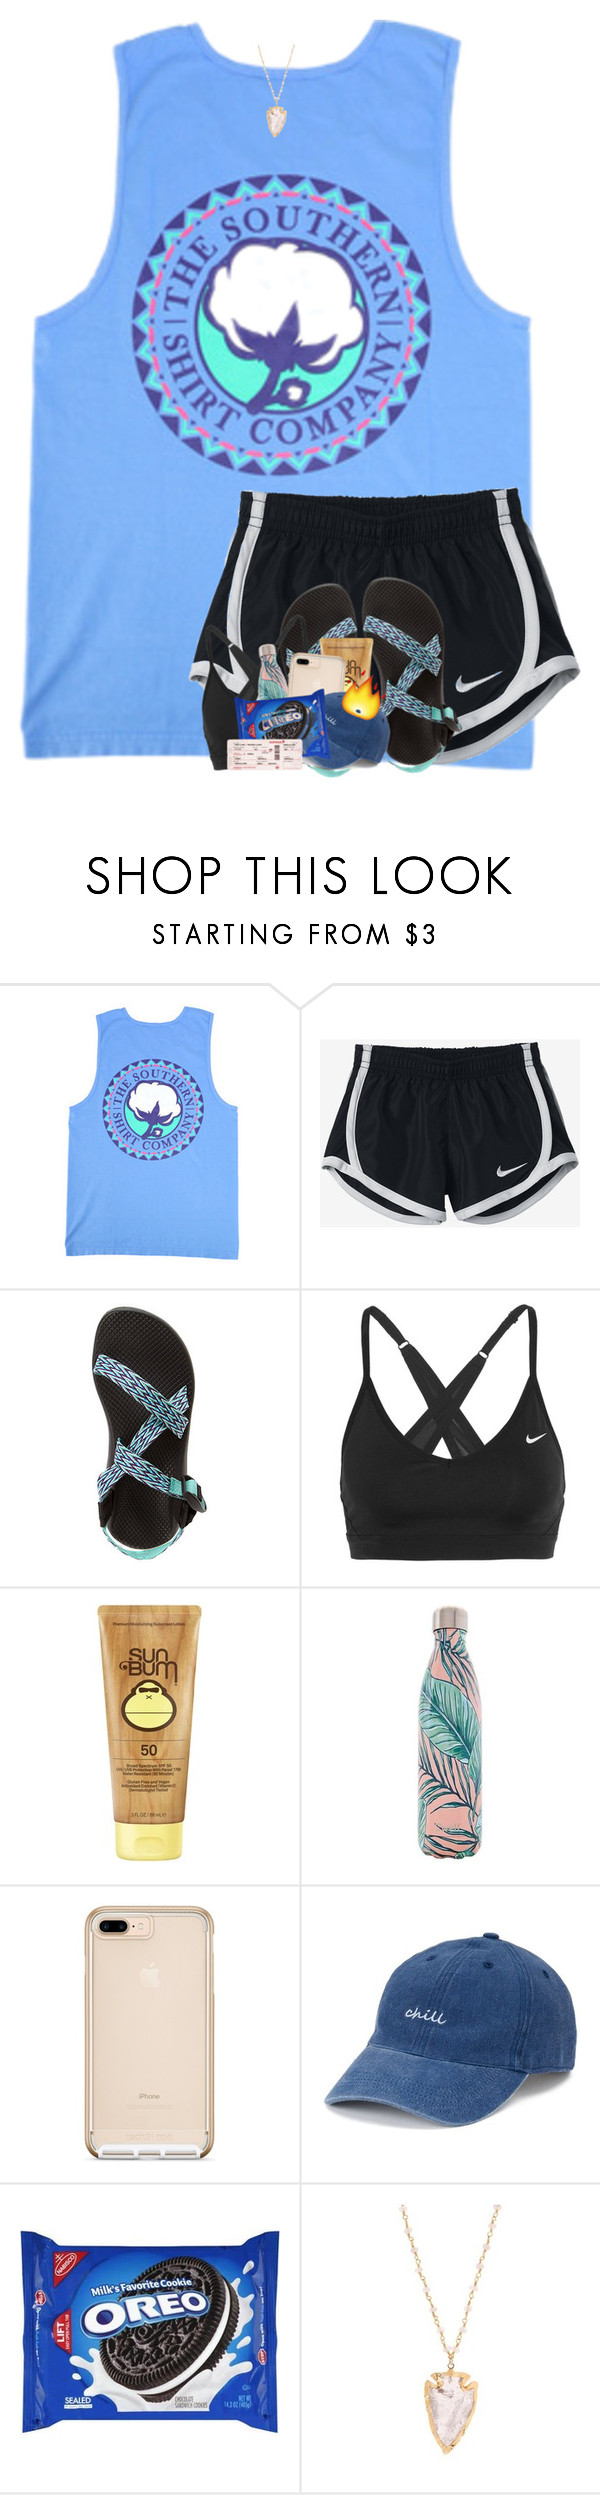 """gerogia bound ☀️"" by theblonde07 ❤ liked on Polyvore featuring NIKE, Chaco, Sun Bum, S'well and SO"